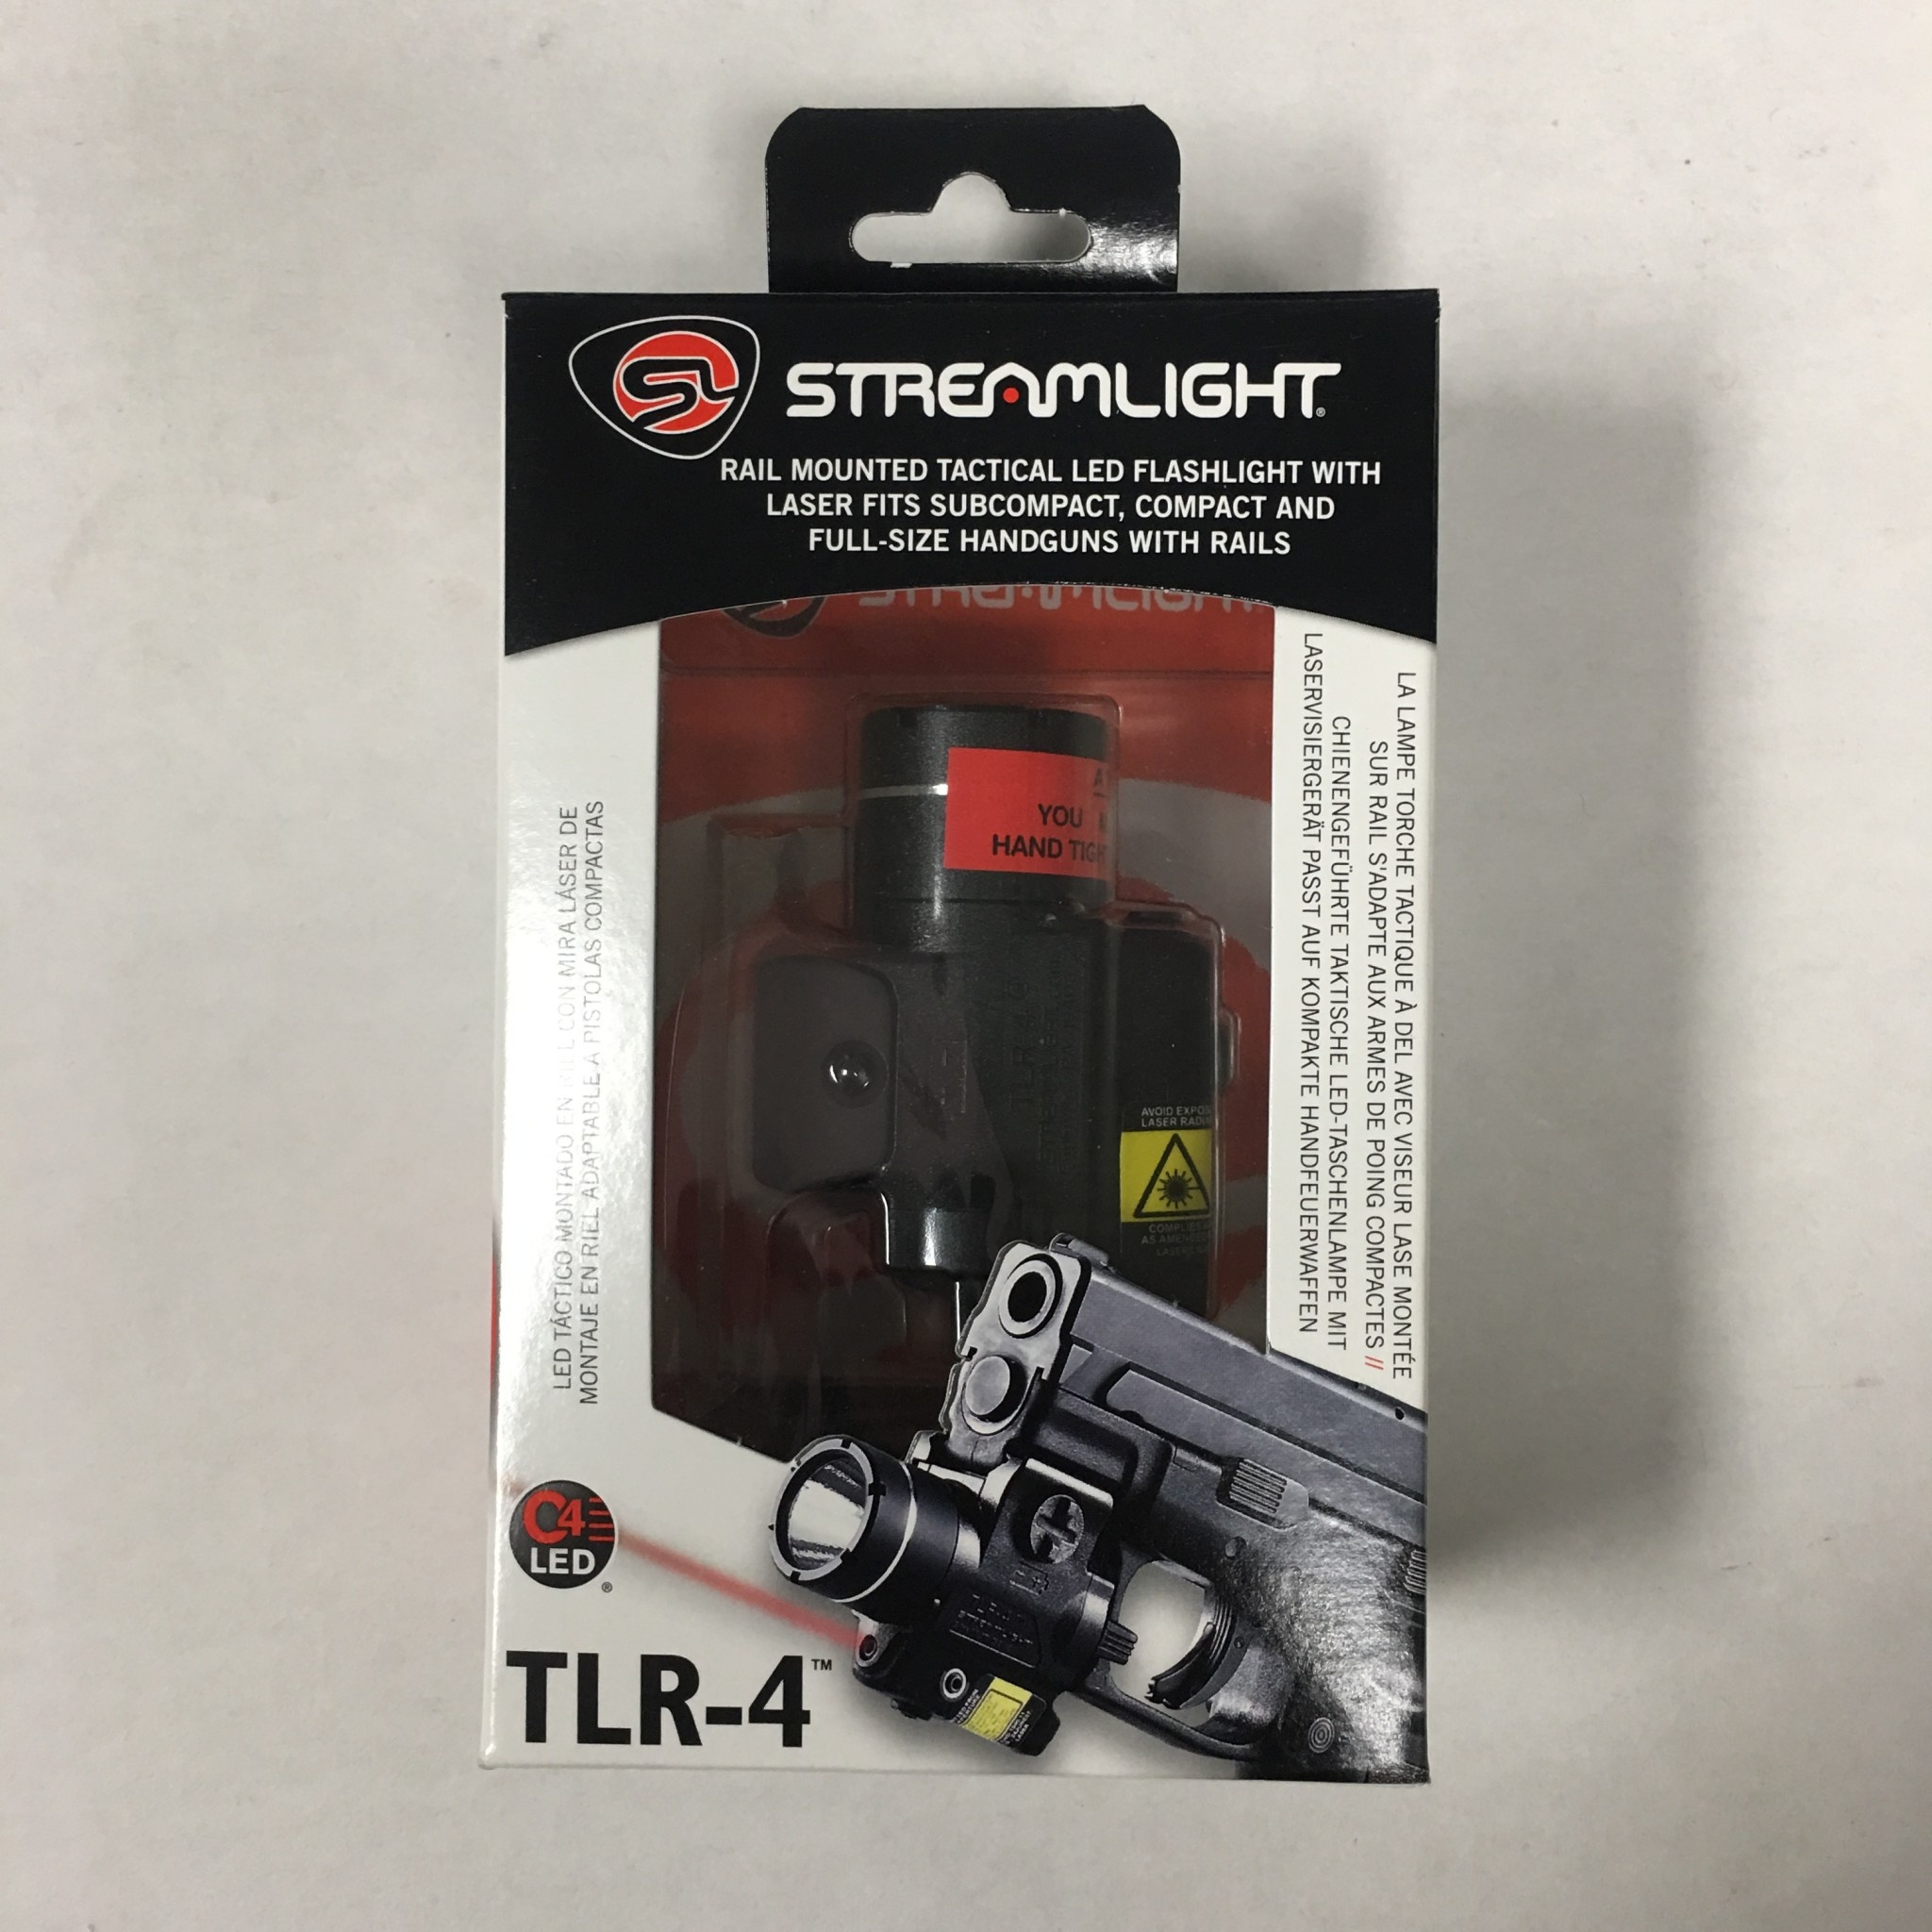 Streamlight TLR-4 Rail Mounted Pistol Light